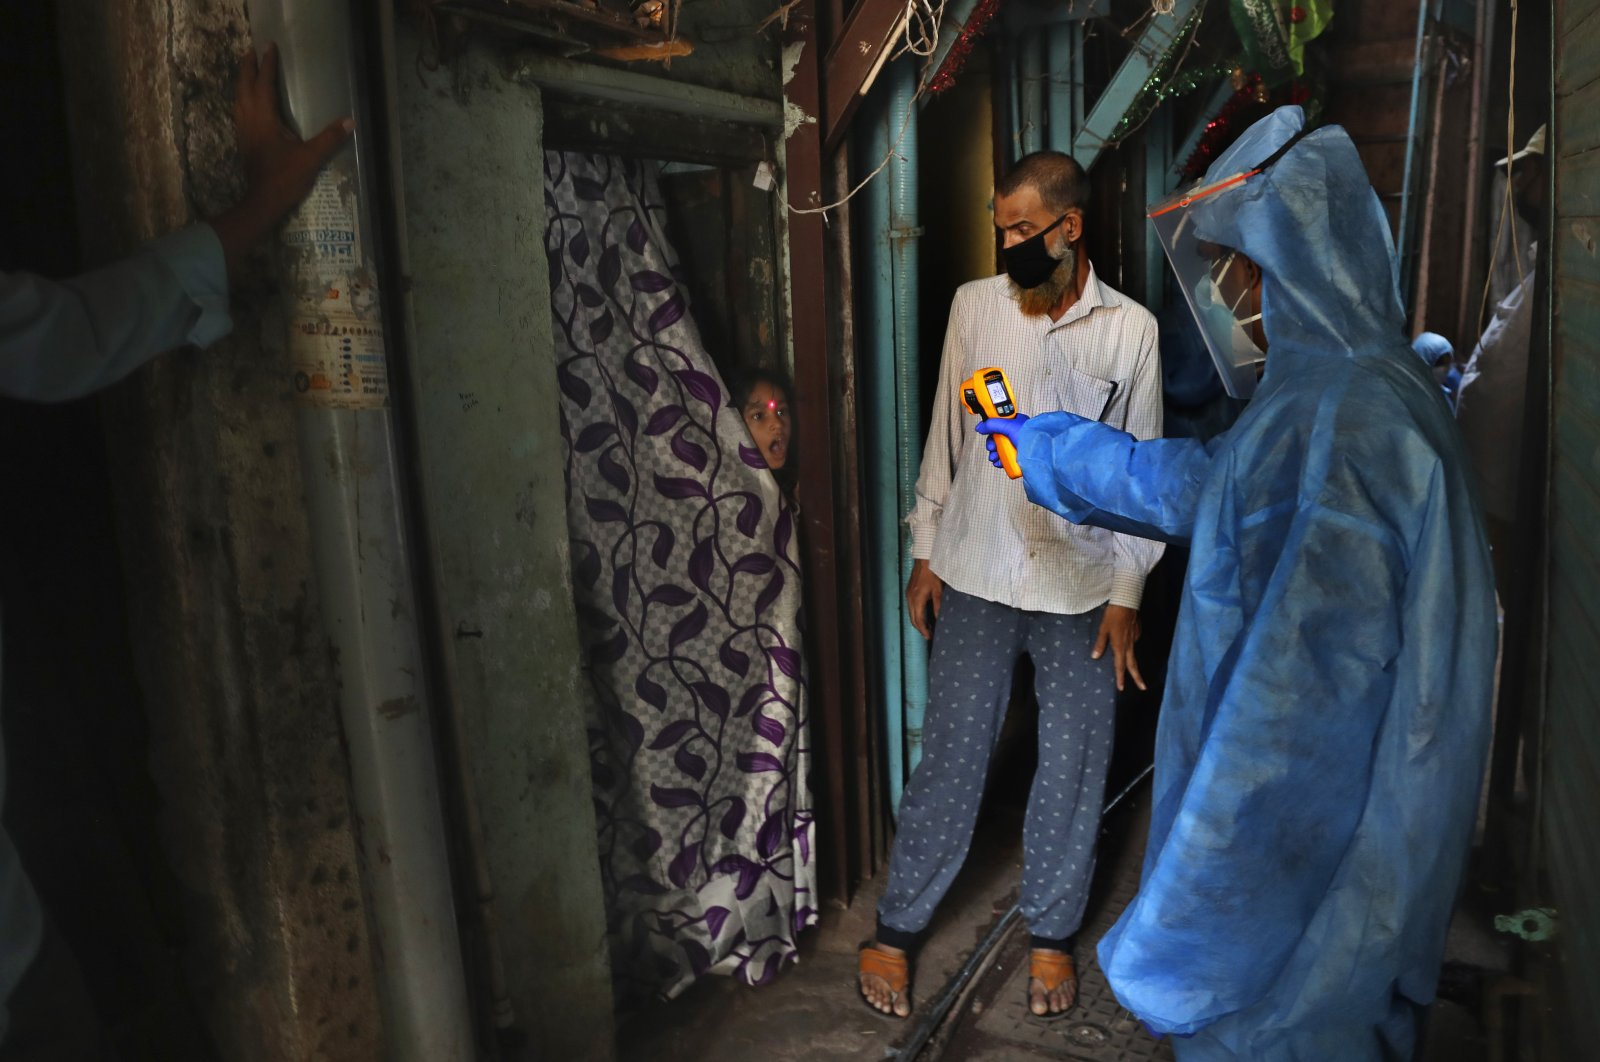 A doctor checks the temperature of a girl in Dharavi, one of Asia's largest slums, during lockdown to prevent the spread of the new coronavirus in Mumbai, India, April 13, 2020. (AP Photo)